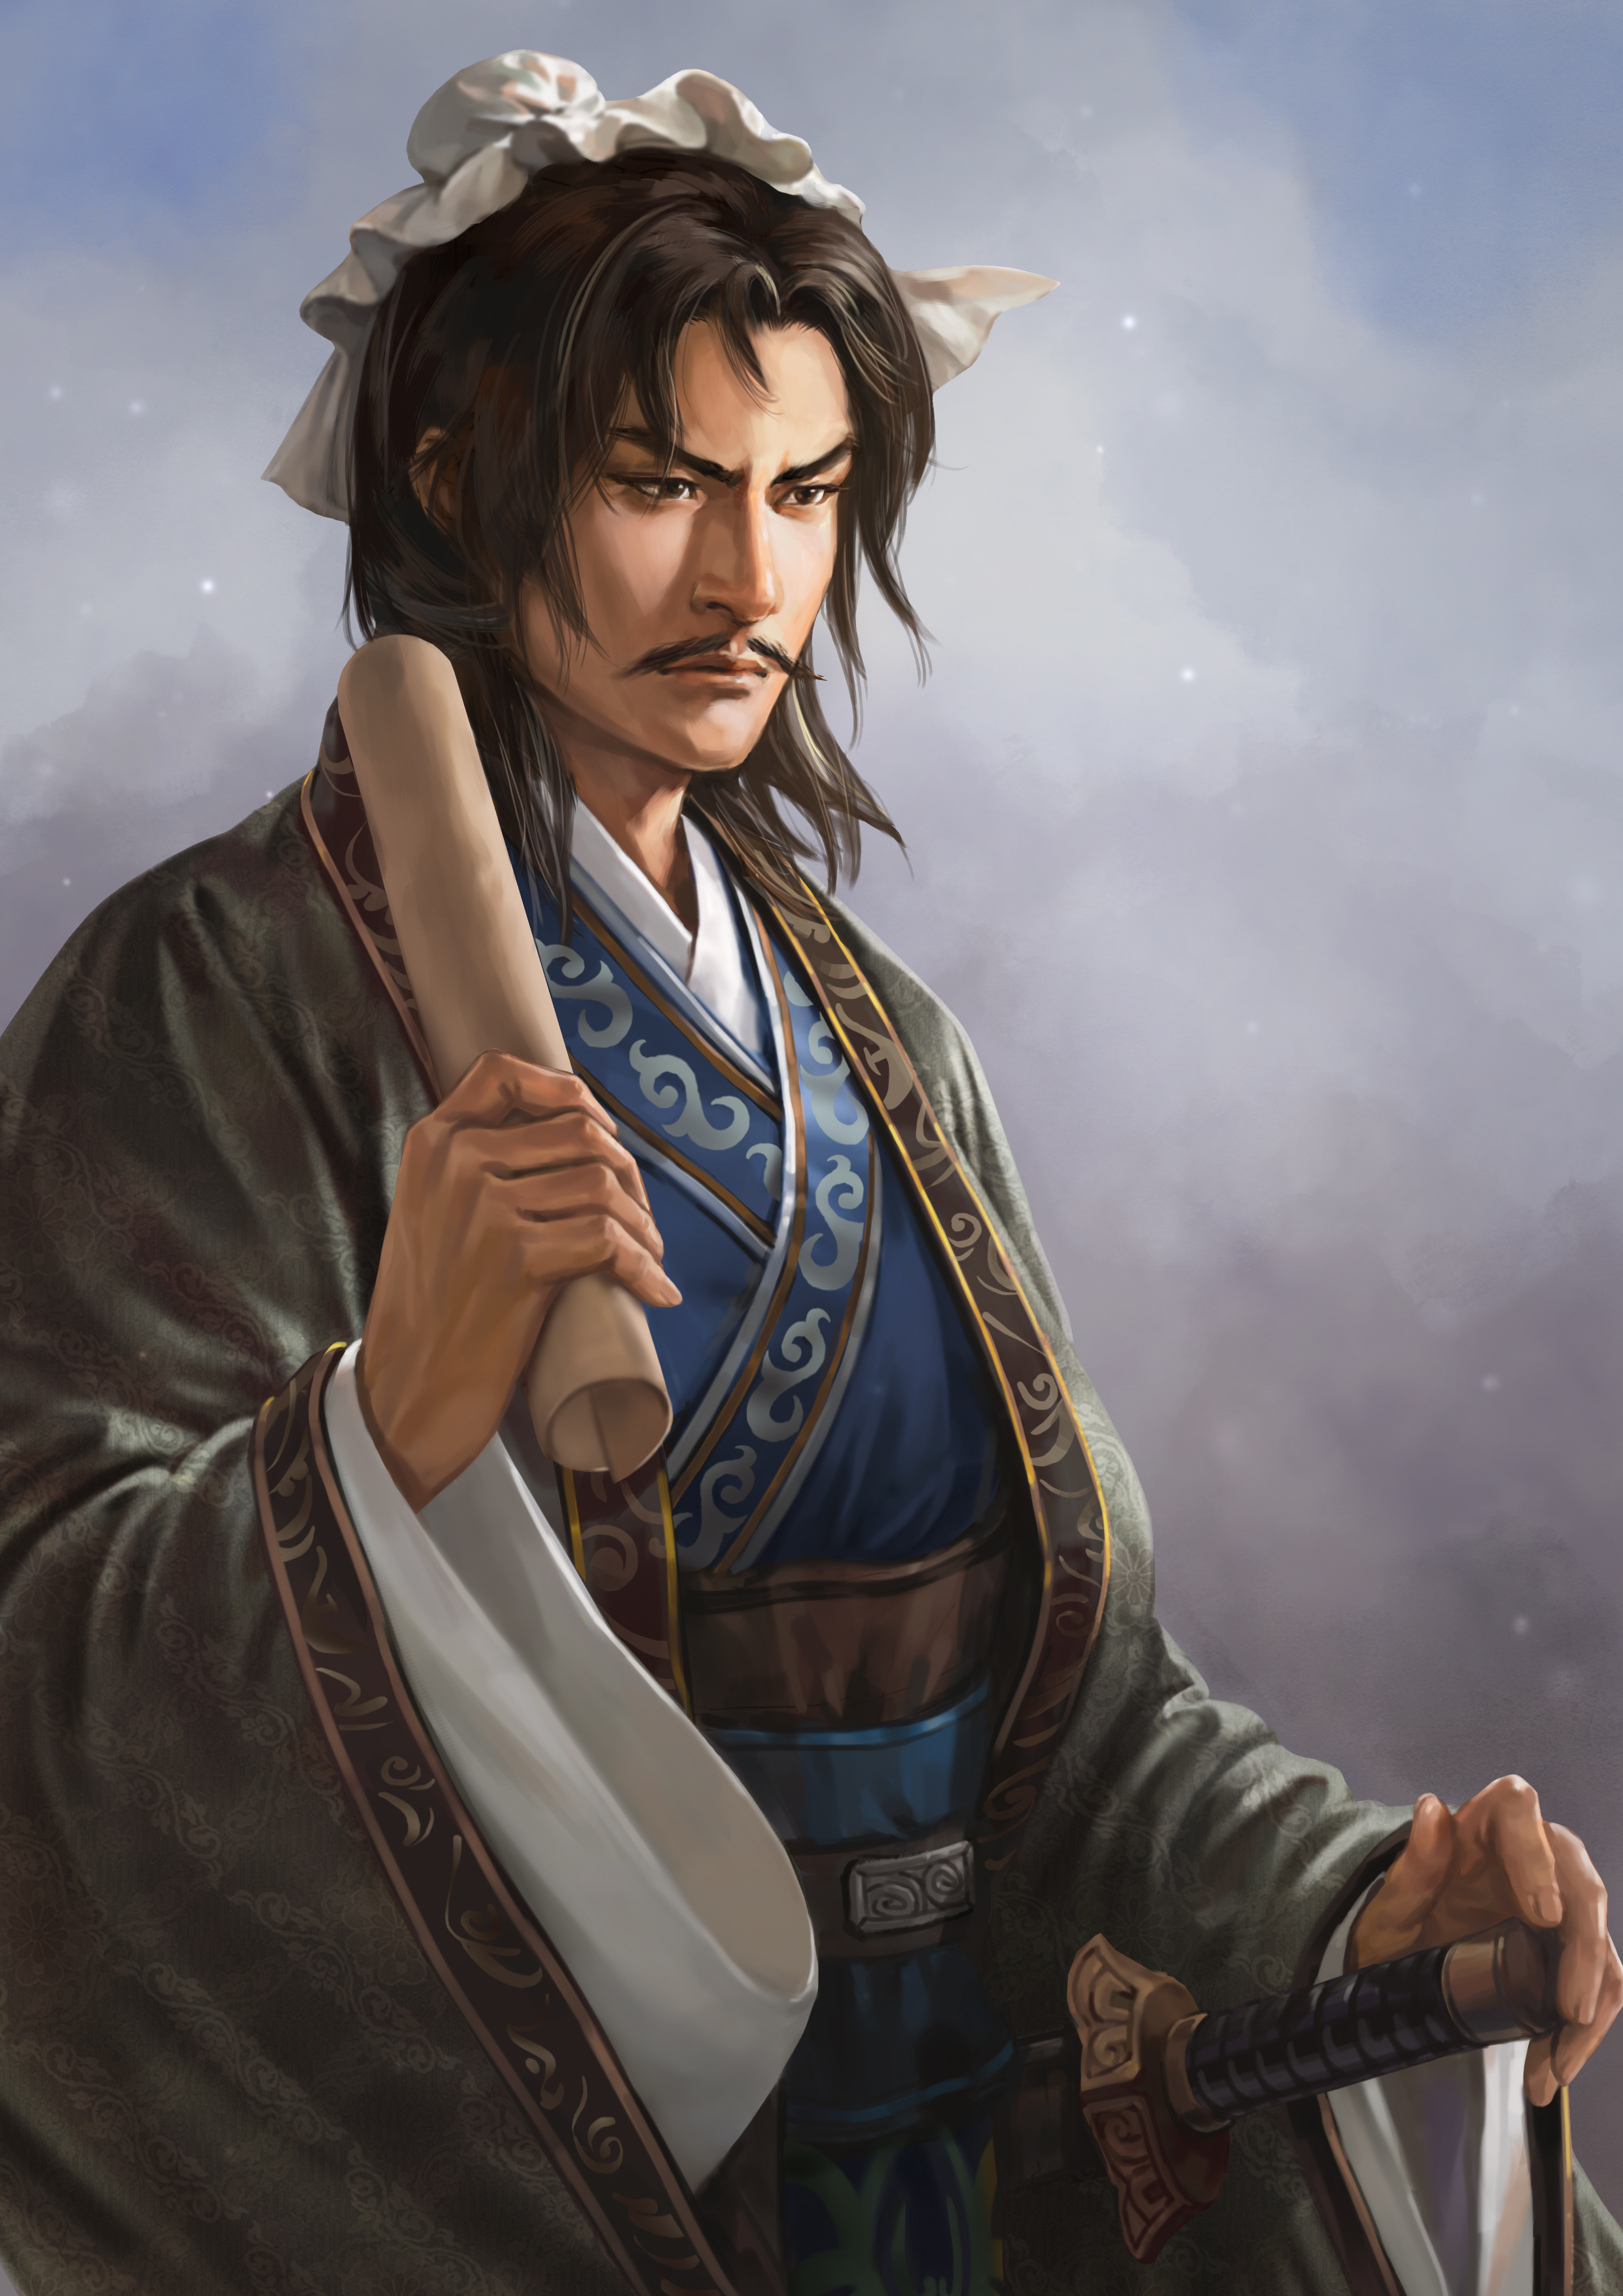 Romance-of-the-Three-Kingdoms-XIV_2019_10-24-19_029.jpg - Romance of the Three Kingdoms 14